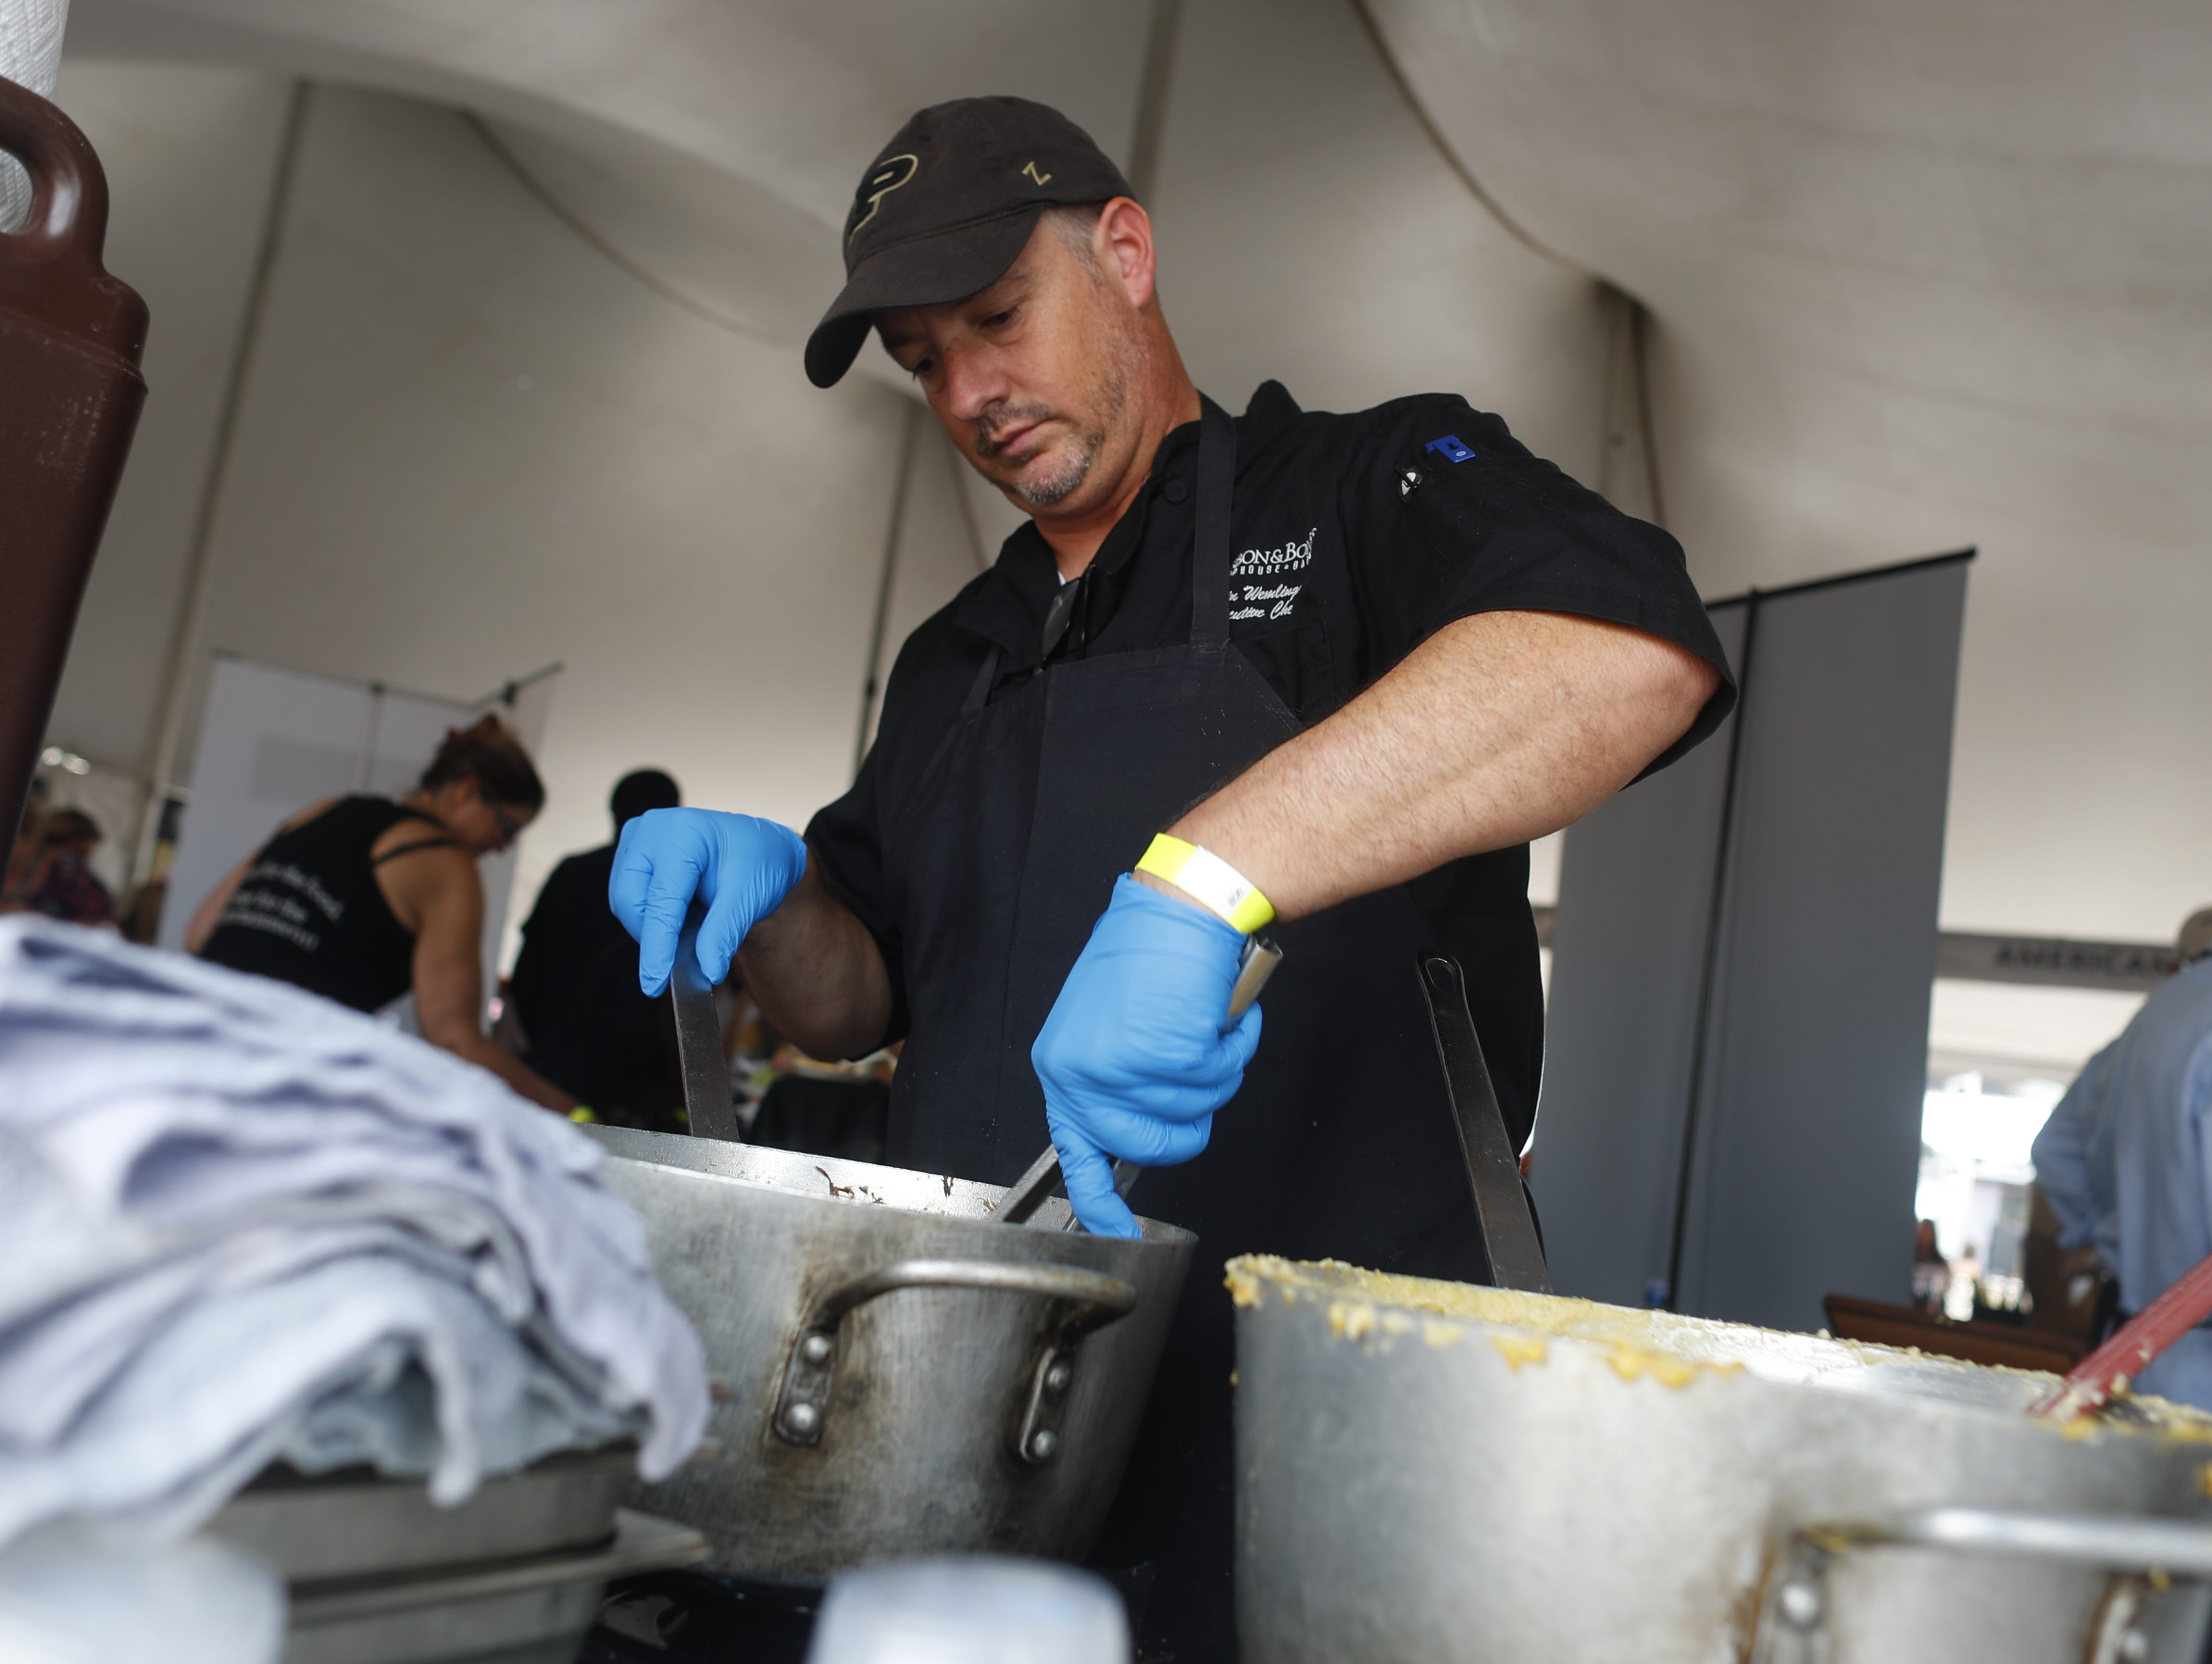 Head chef Kevin Wemlinger prepares some food during the azcentral Wine & Food Experience at WestWorld of Scottsdale, Ariz. on Nov. 4, 2018.